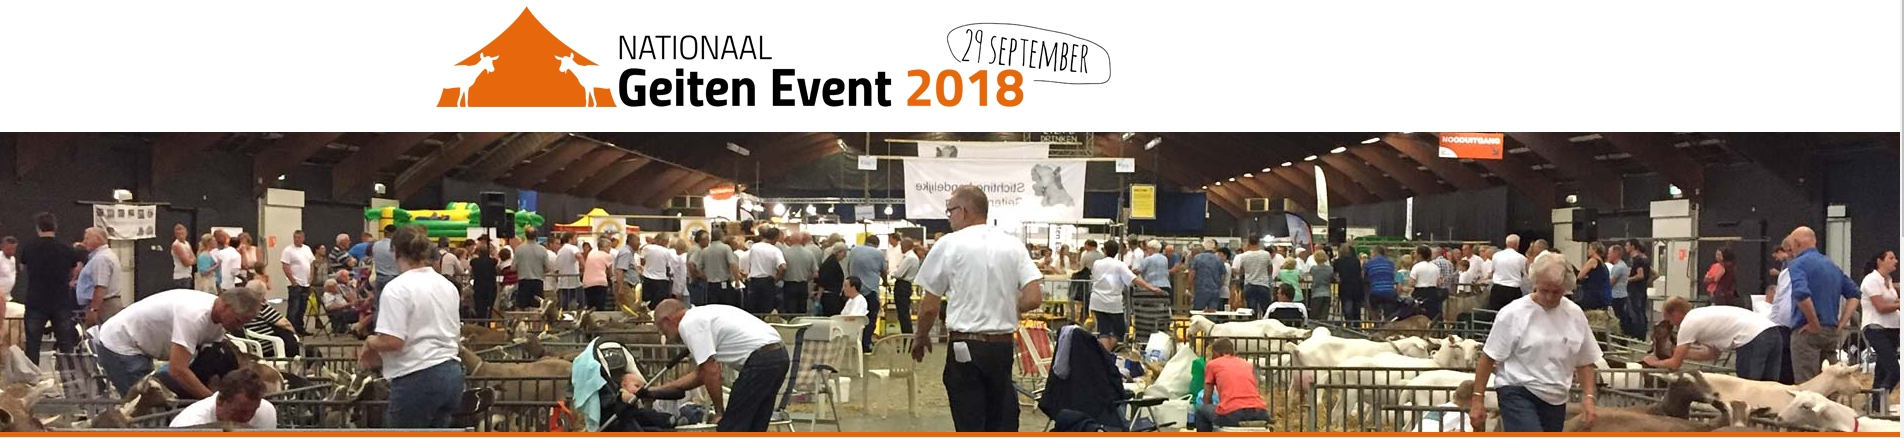 Nationaal Geiten Event 2018